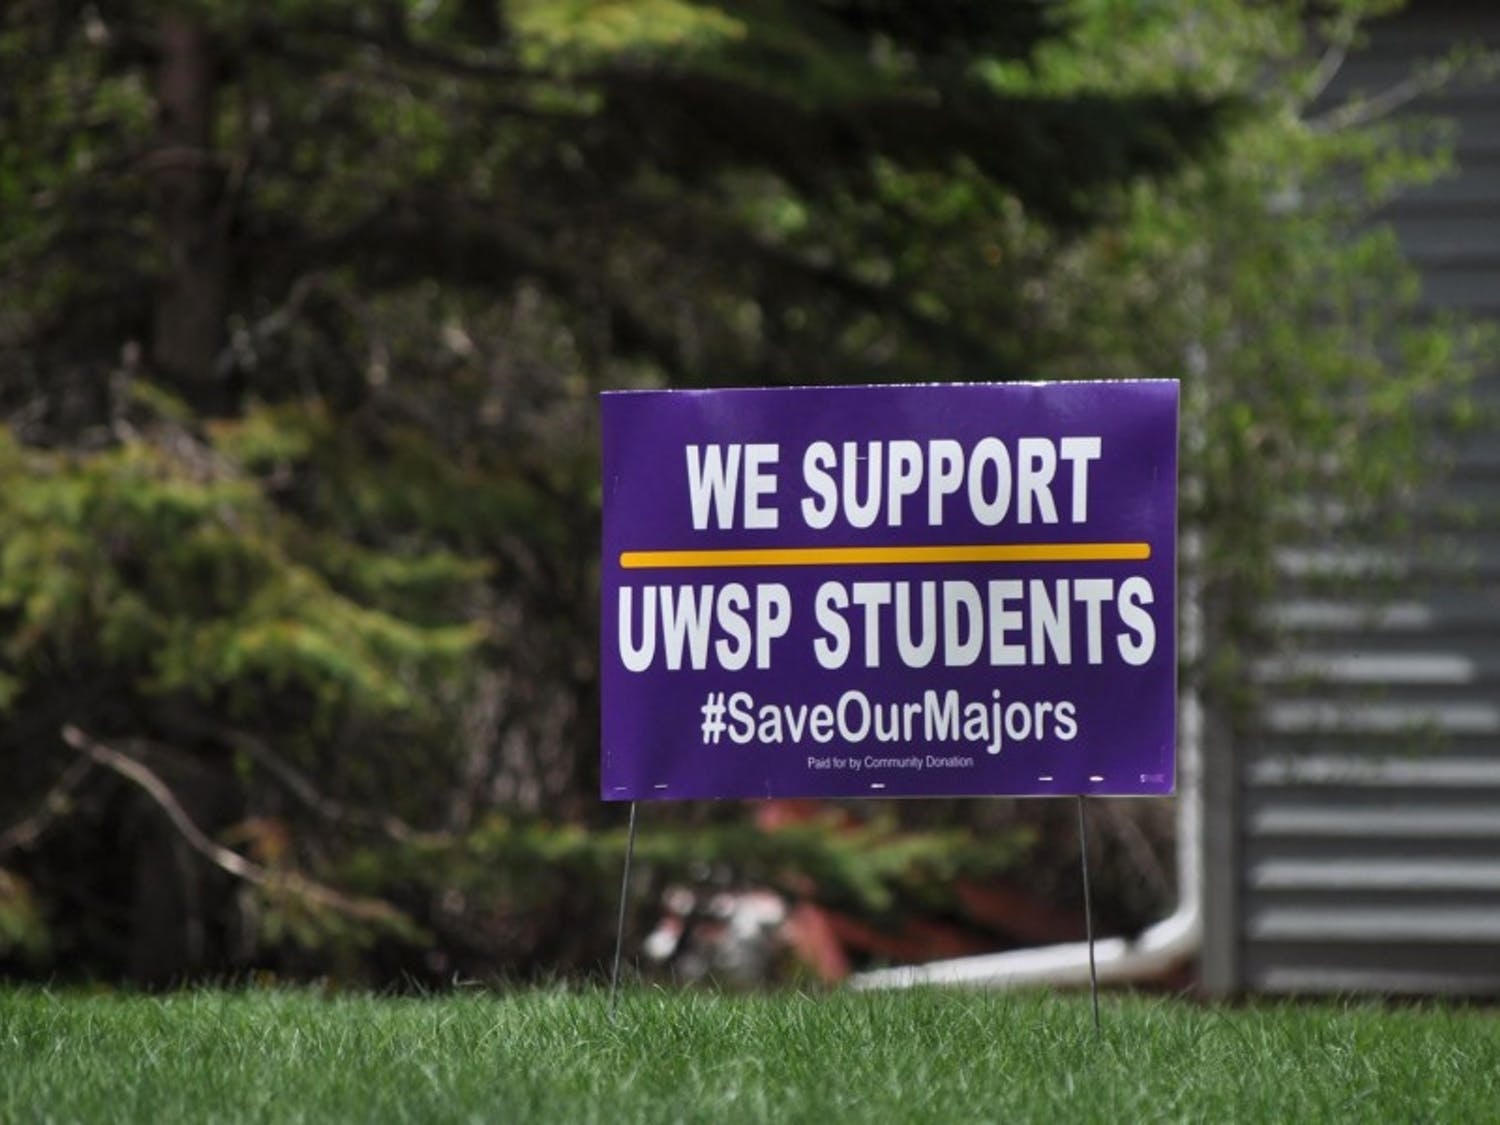 Five months after introducing proposal to cut six humanities majors, UW-Stevens Point announced plans to keep all degrees intact Wednesday.